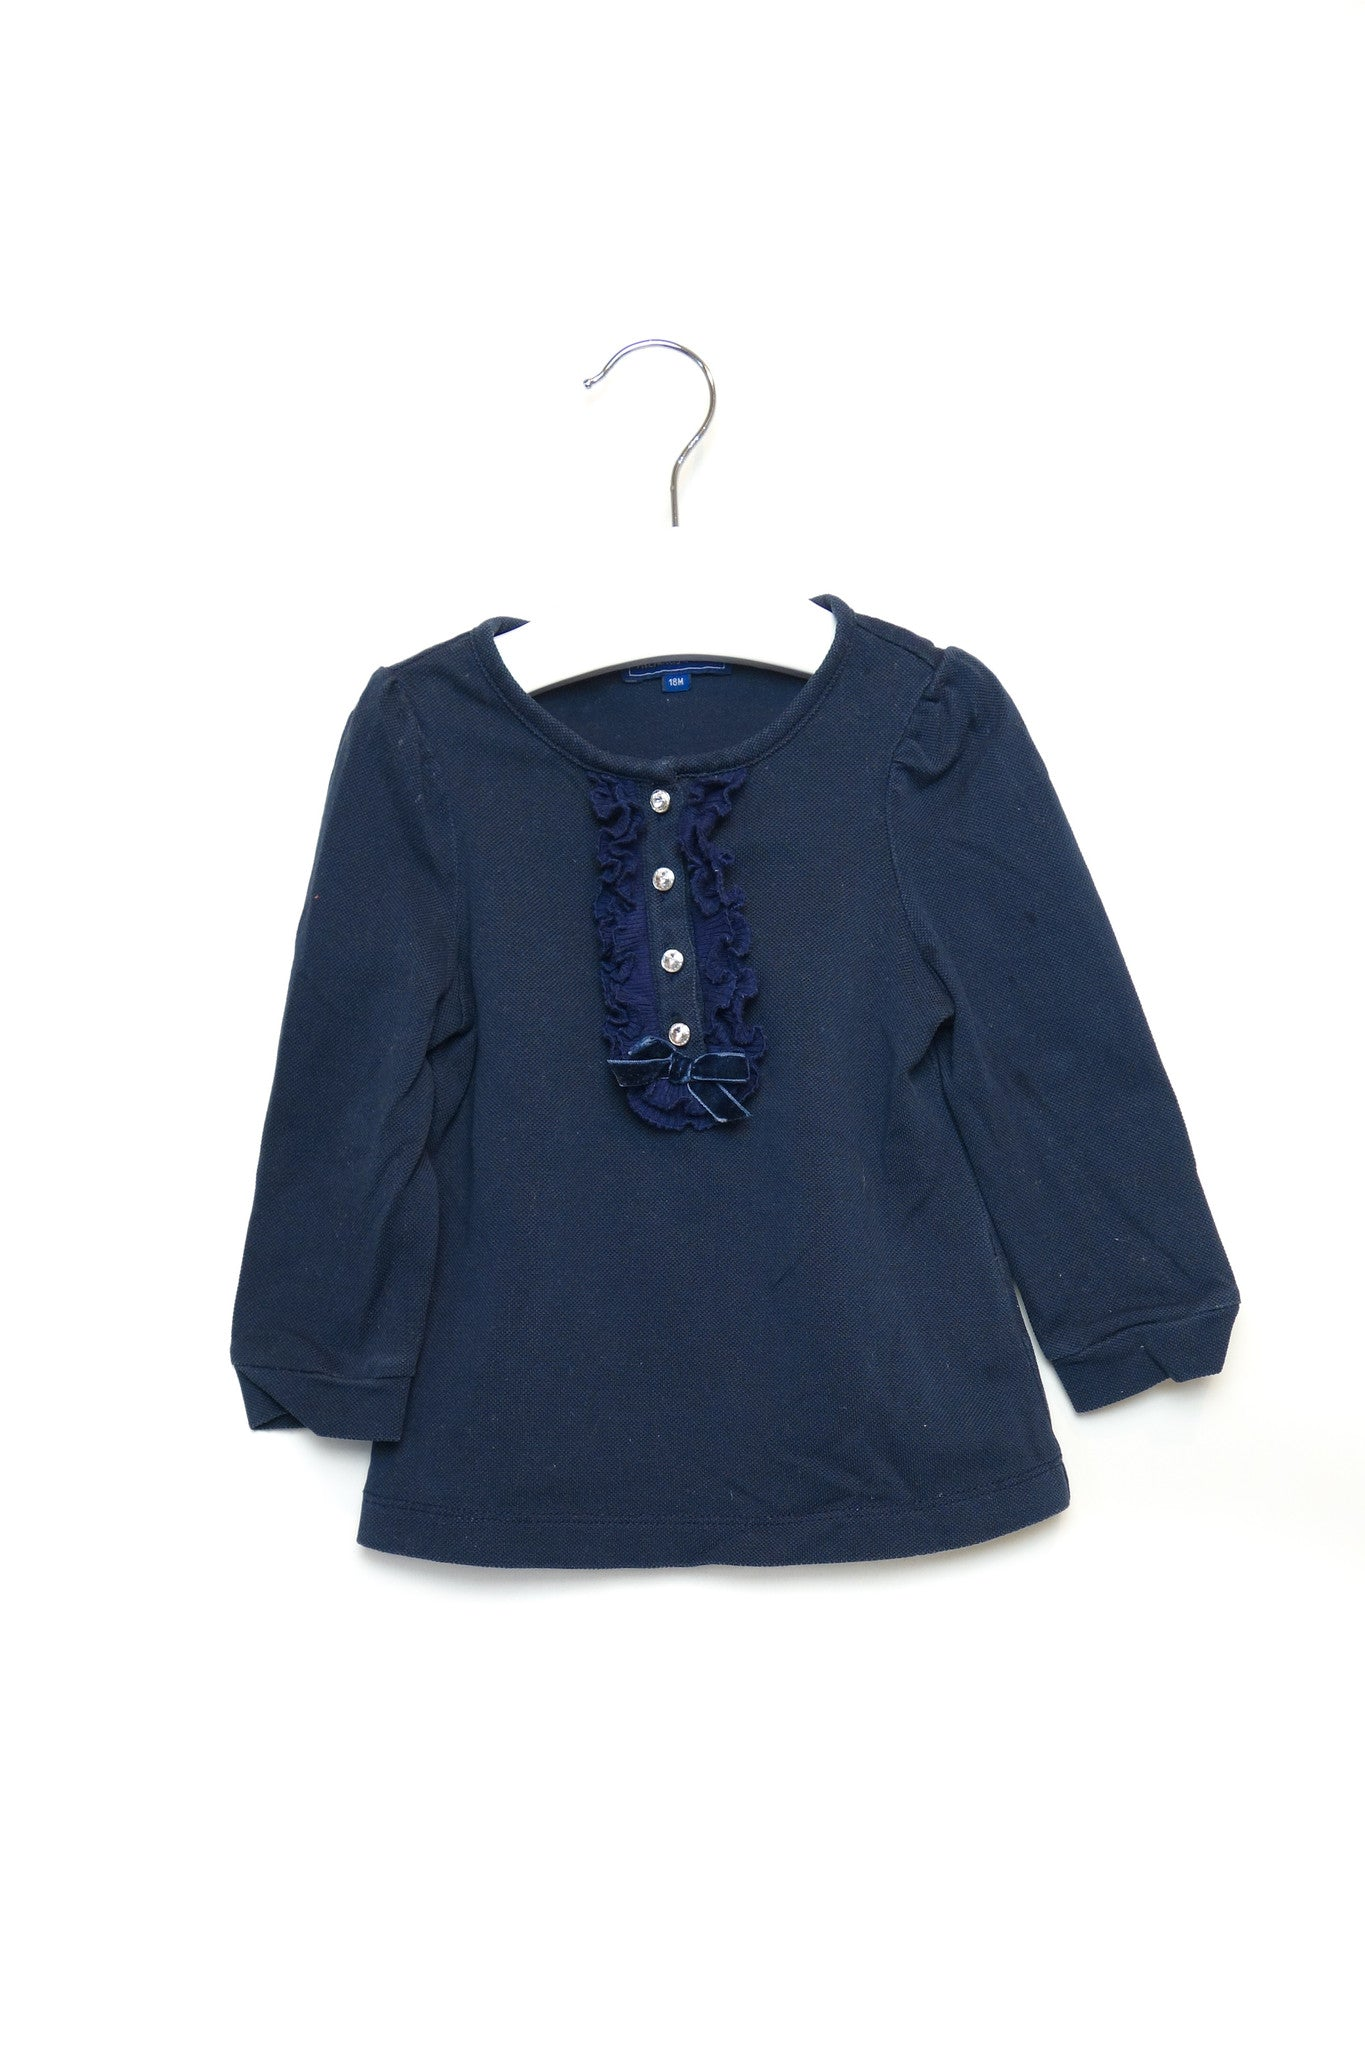 10001476~Top 18M, Nicholas & Bears at Retykle - Online Baby & Kids Clothing Up to 90% Off